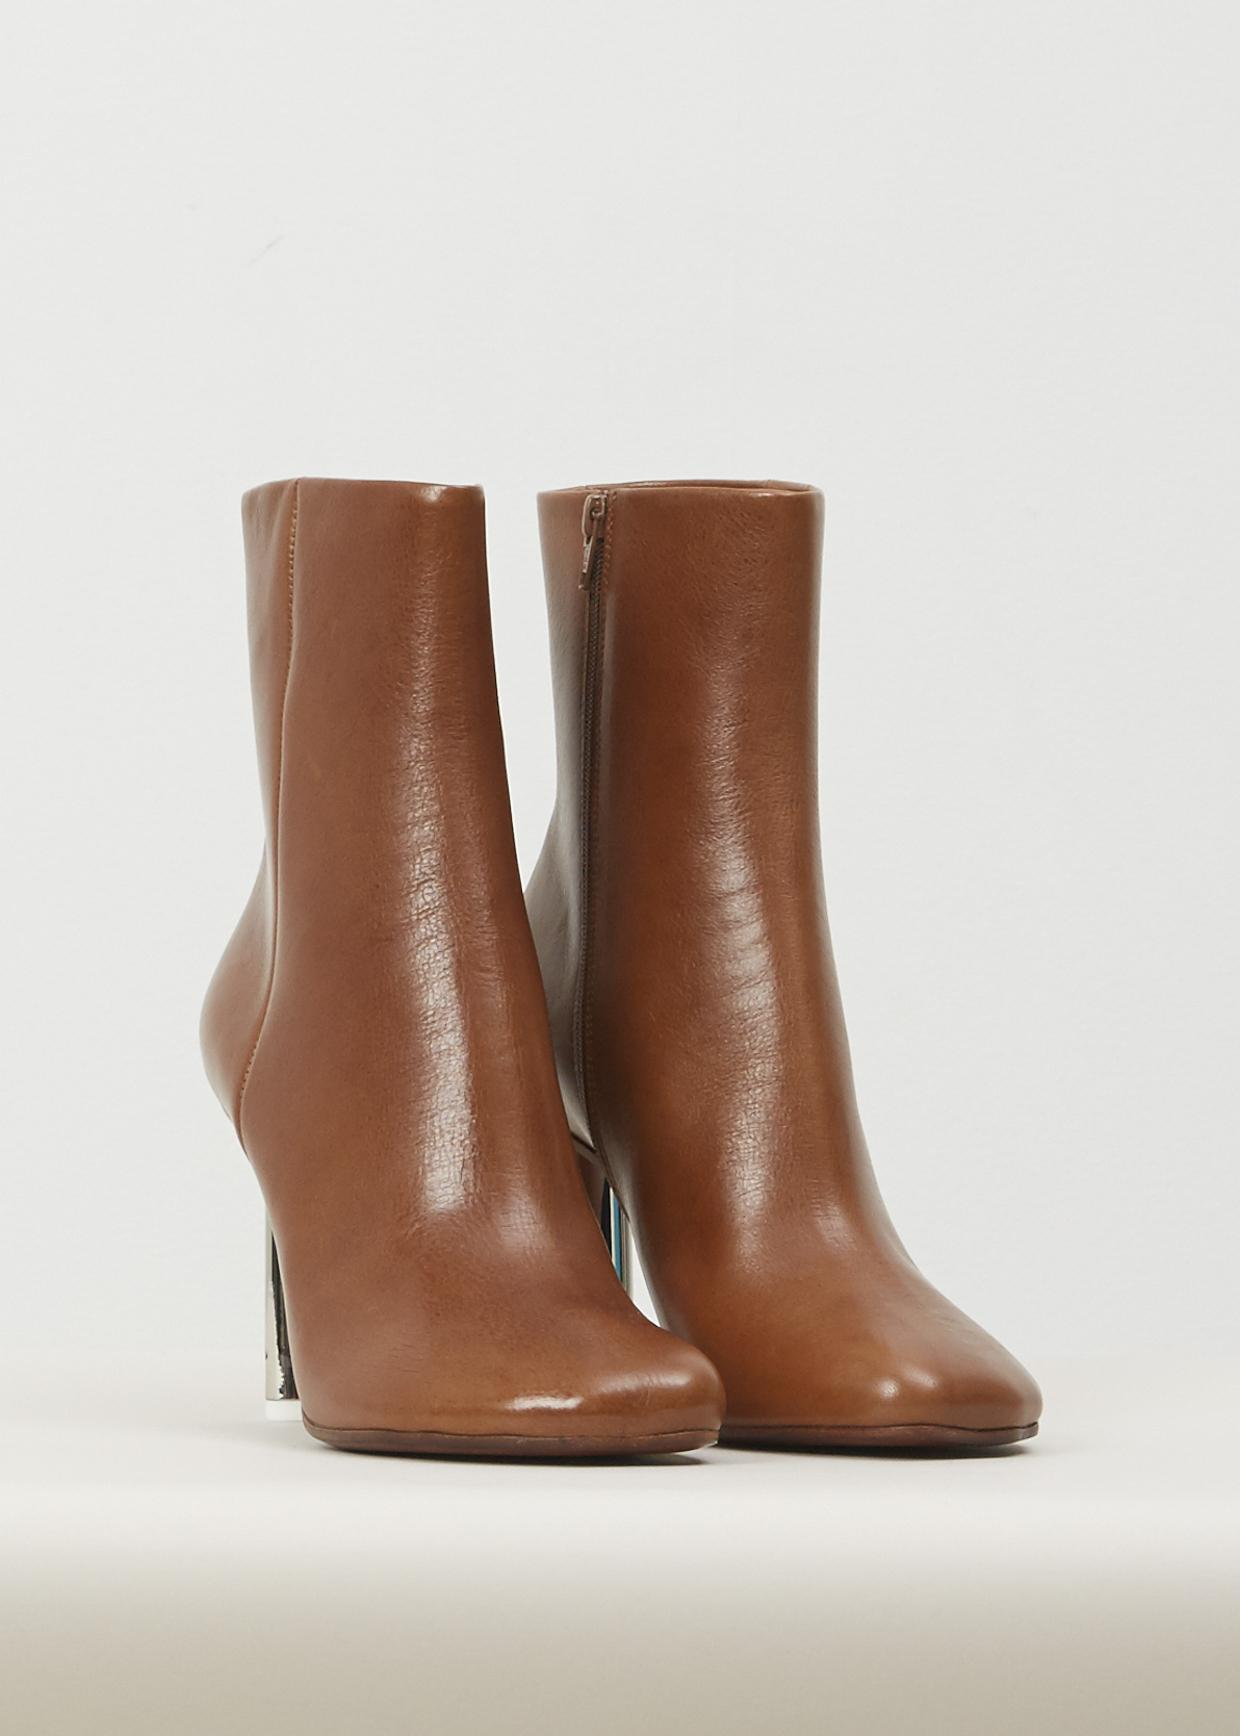 Lyst Vetements Brown Silver Heel Toe Ankle Boots In Brown